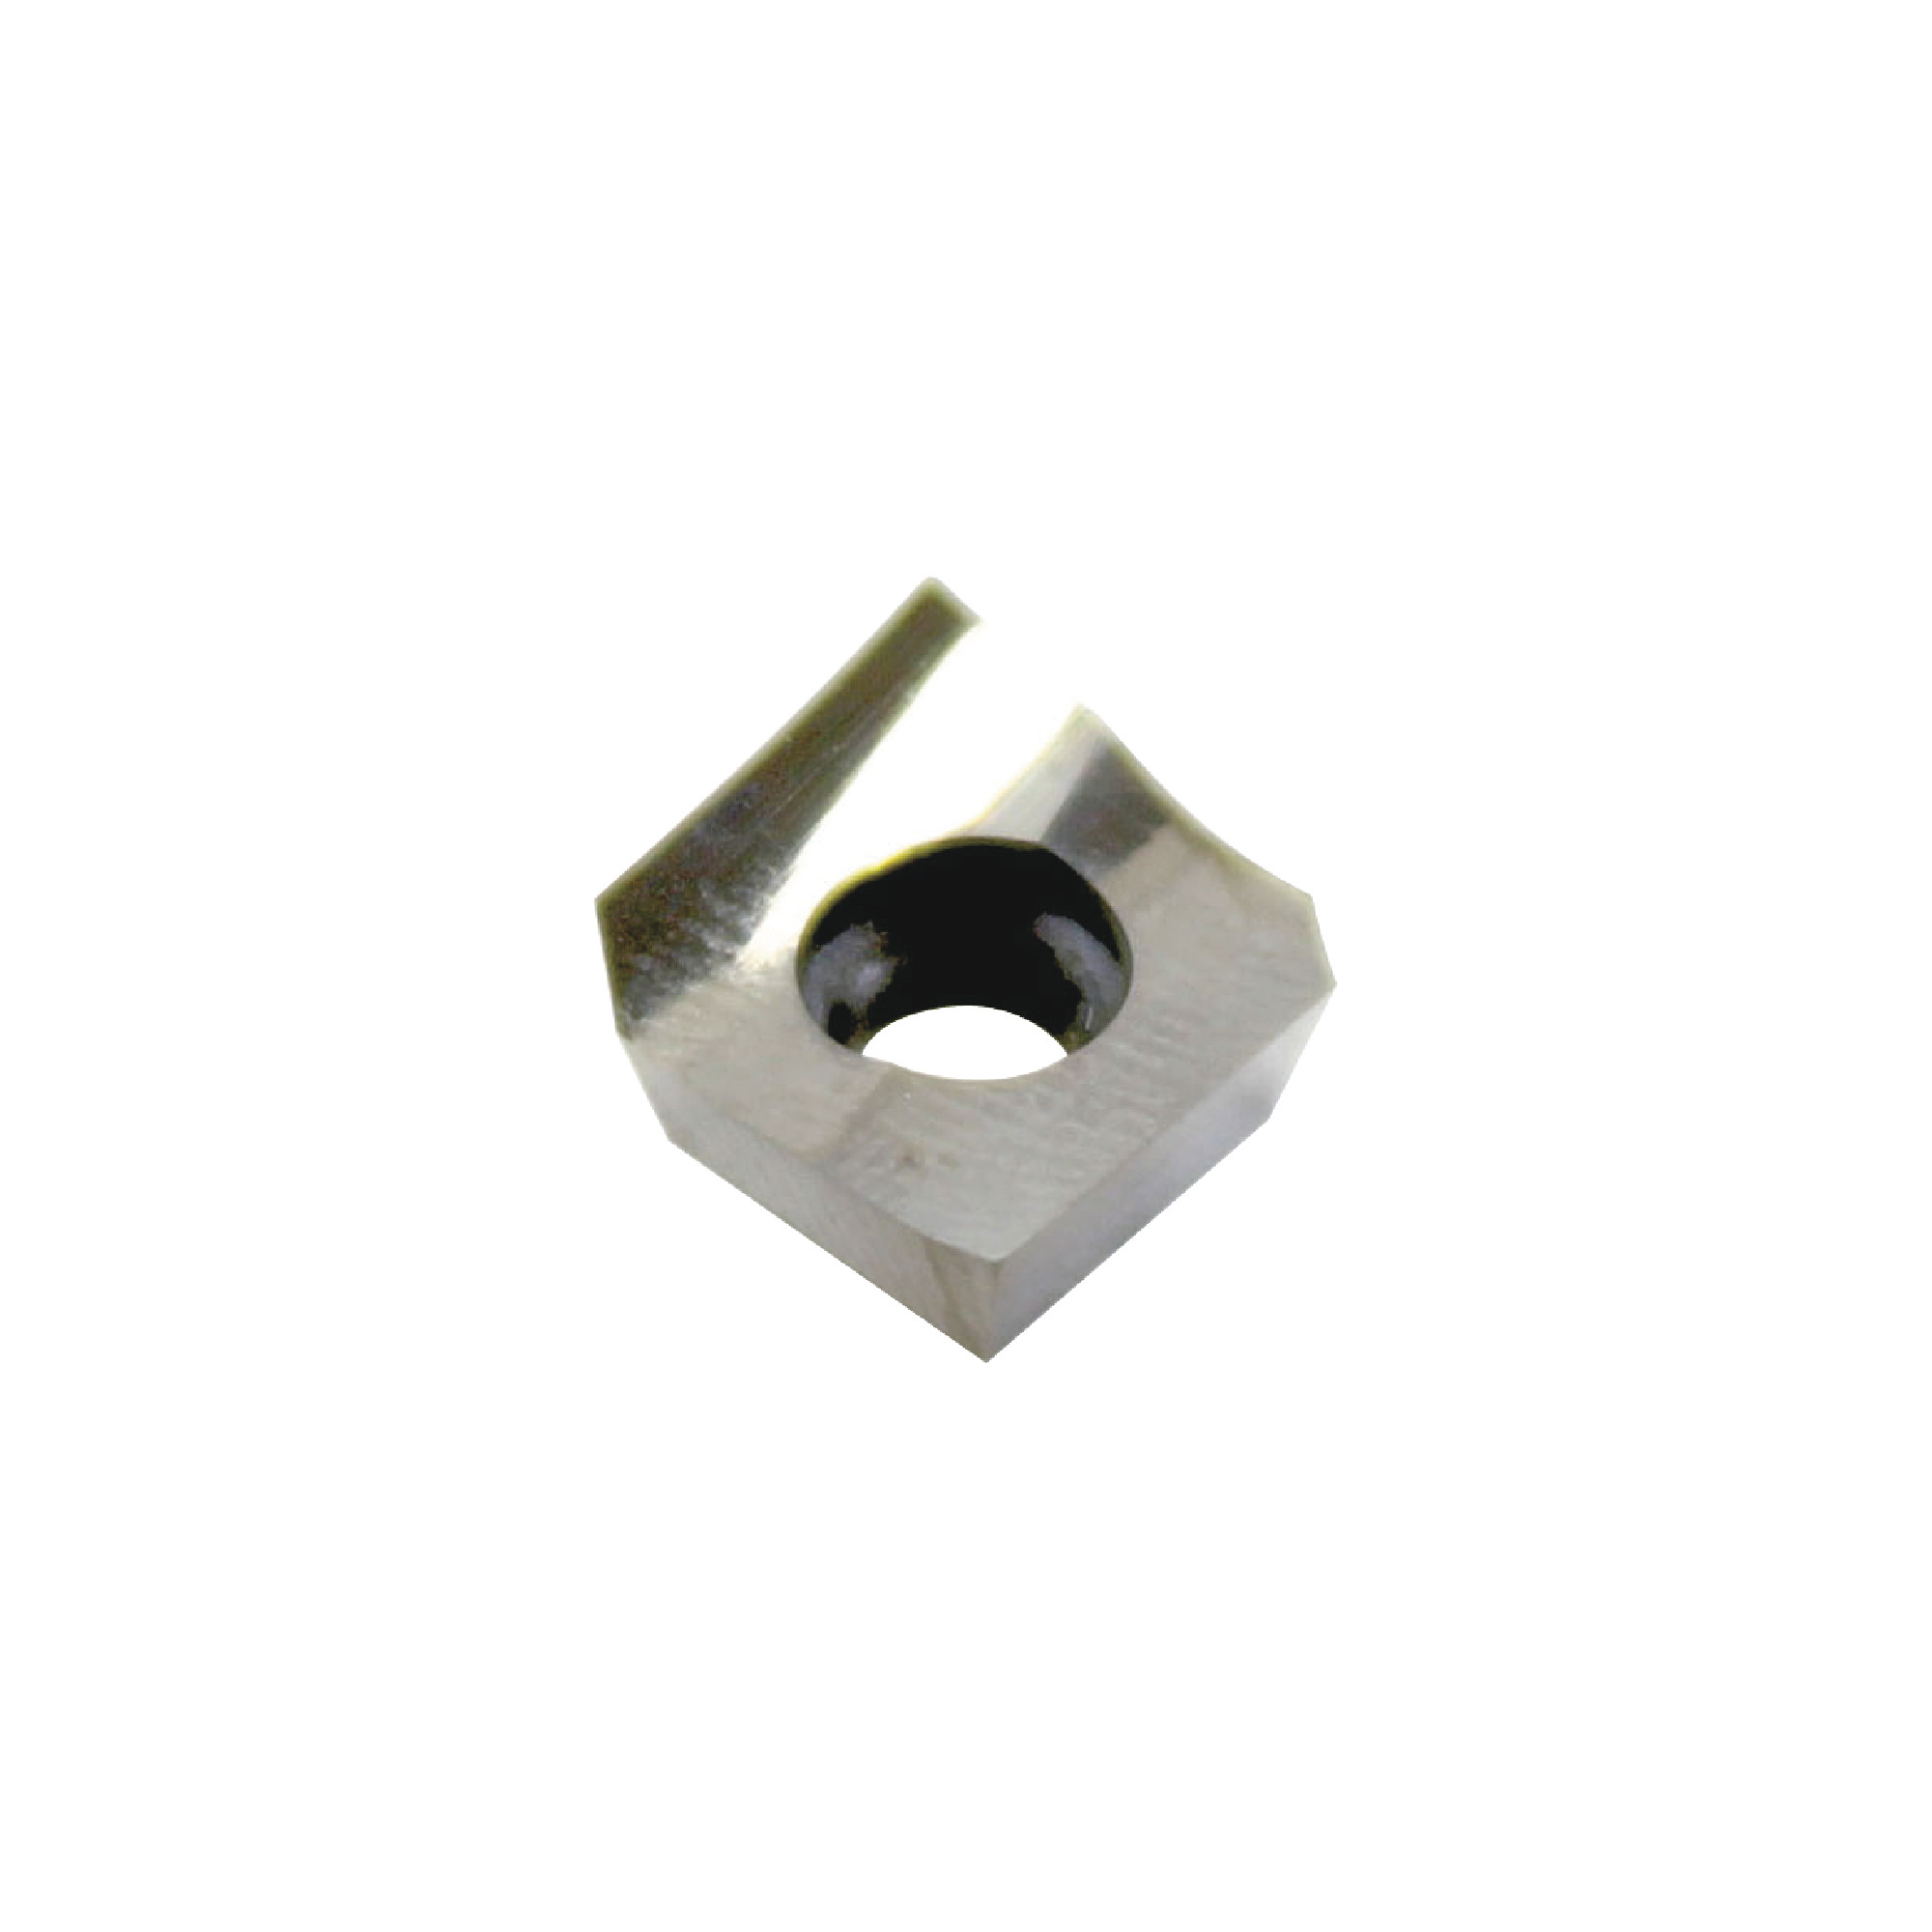 AB TOOLS - ADEH431 C2 Parallelogram / INDEXABLE Carbide MILLING INSERT